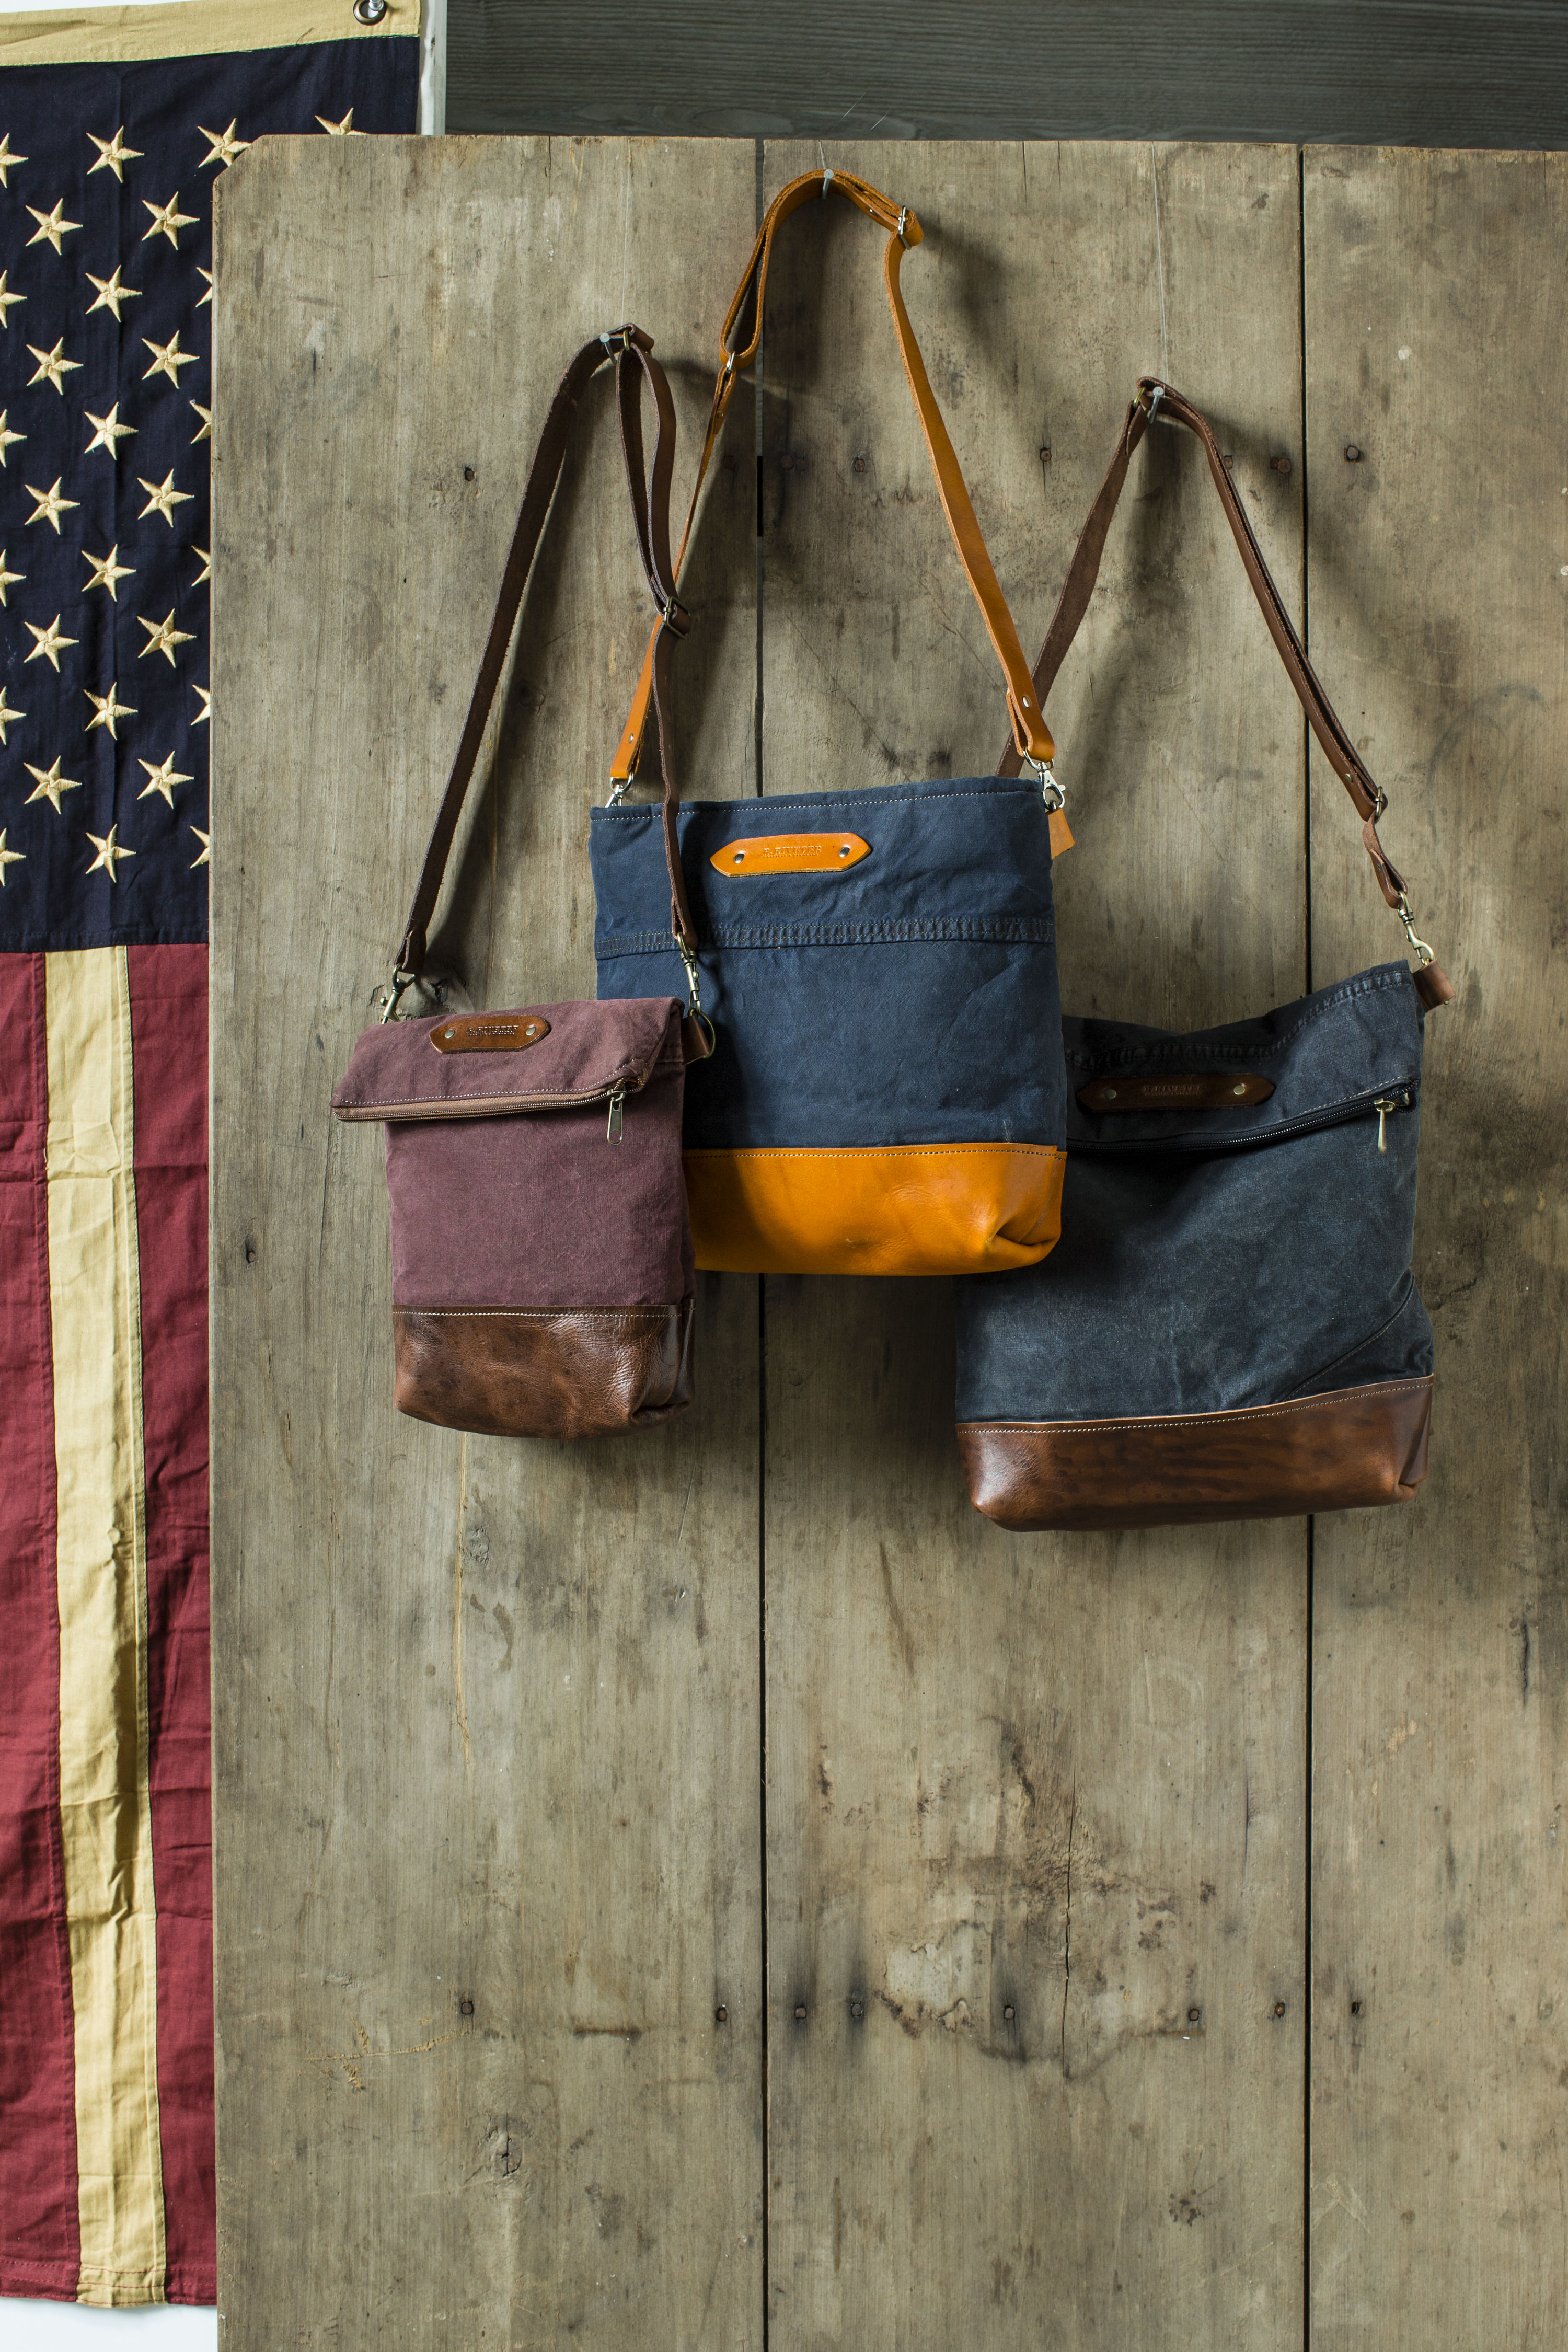 Made in the South: R. Riveter Handbags